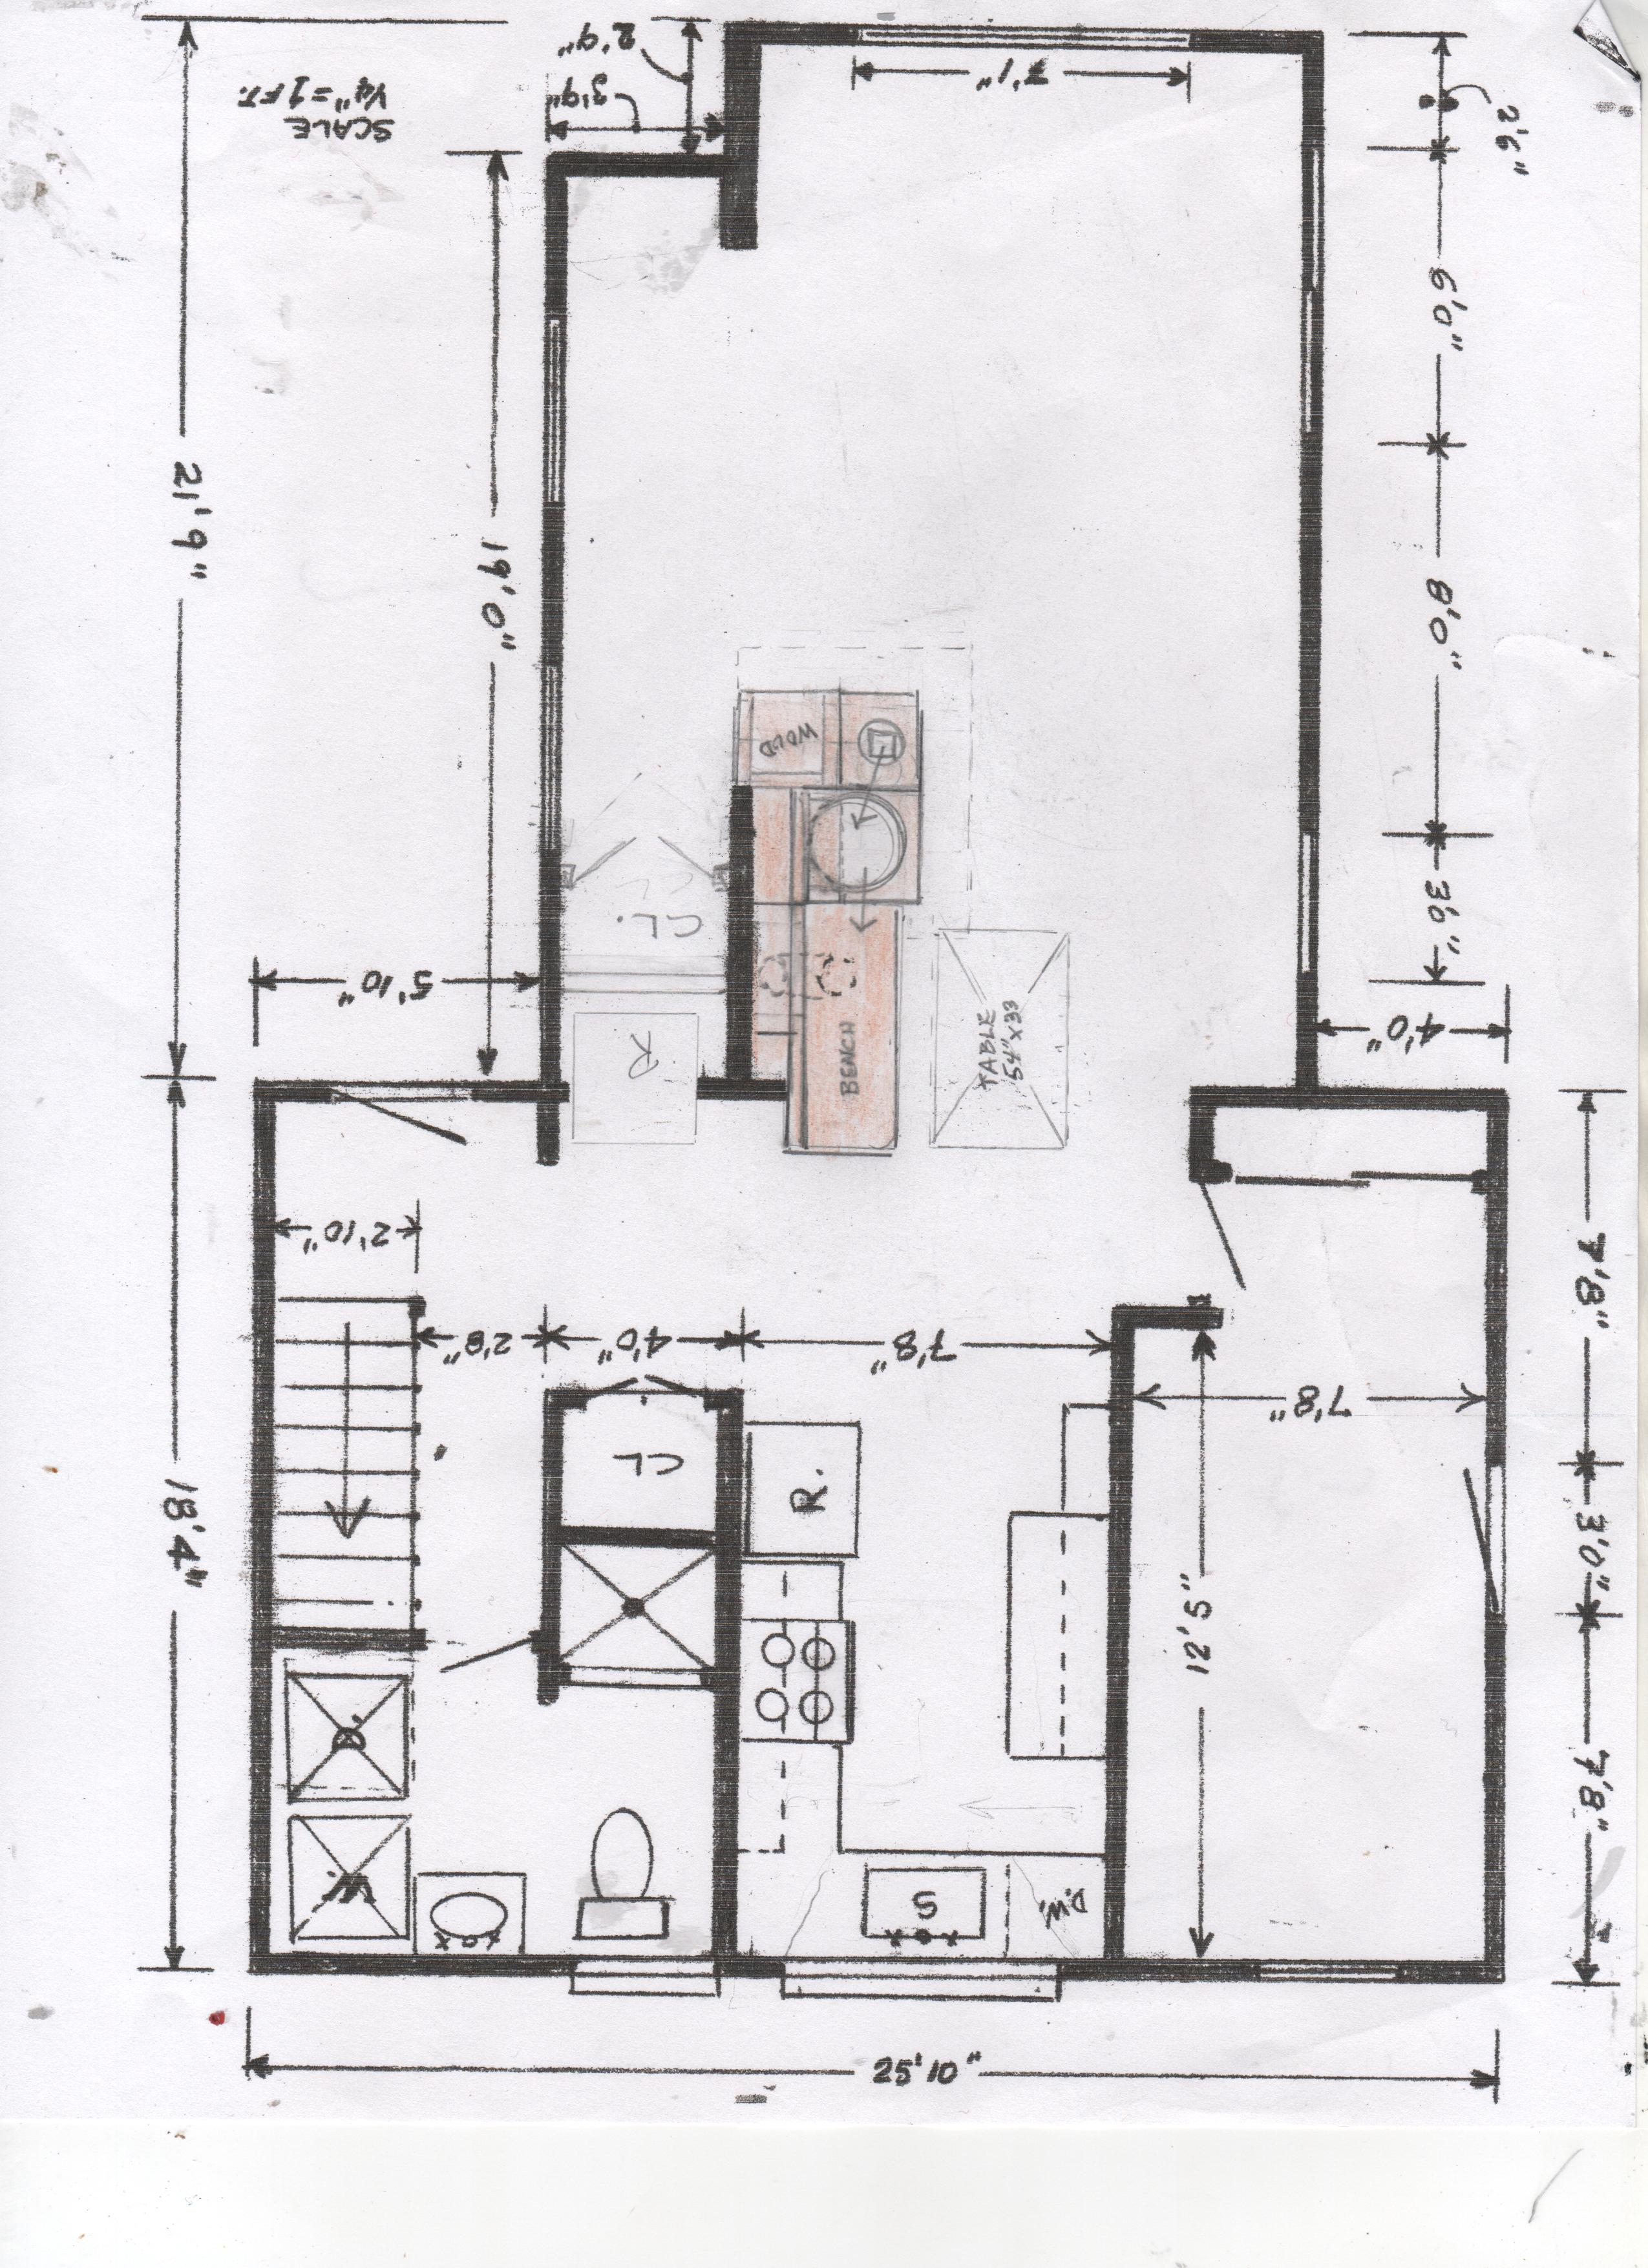 Rocket Stove Plans : Rocket Stove Plans Rocket Stove in House Plan